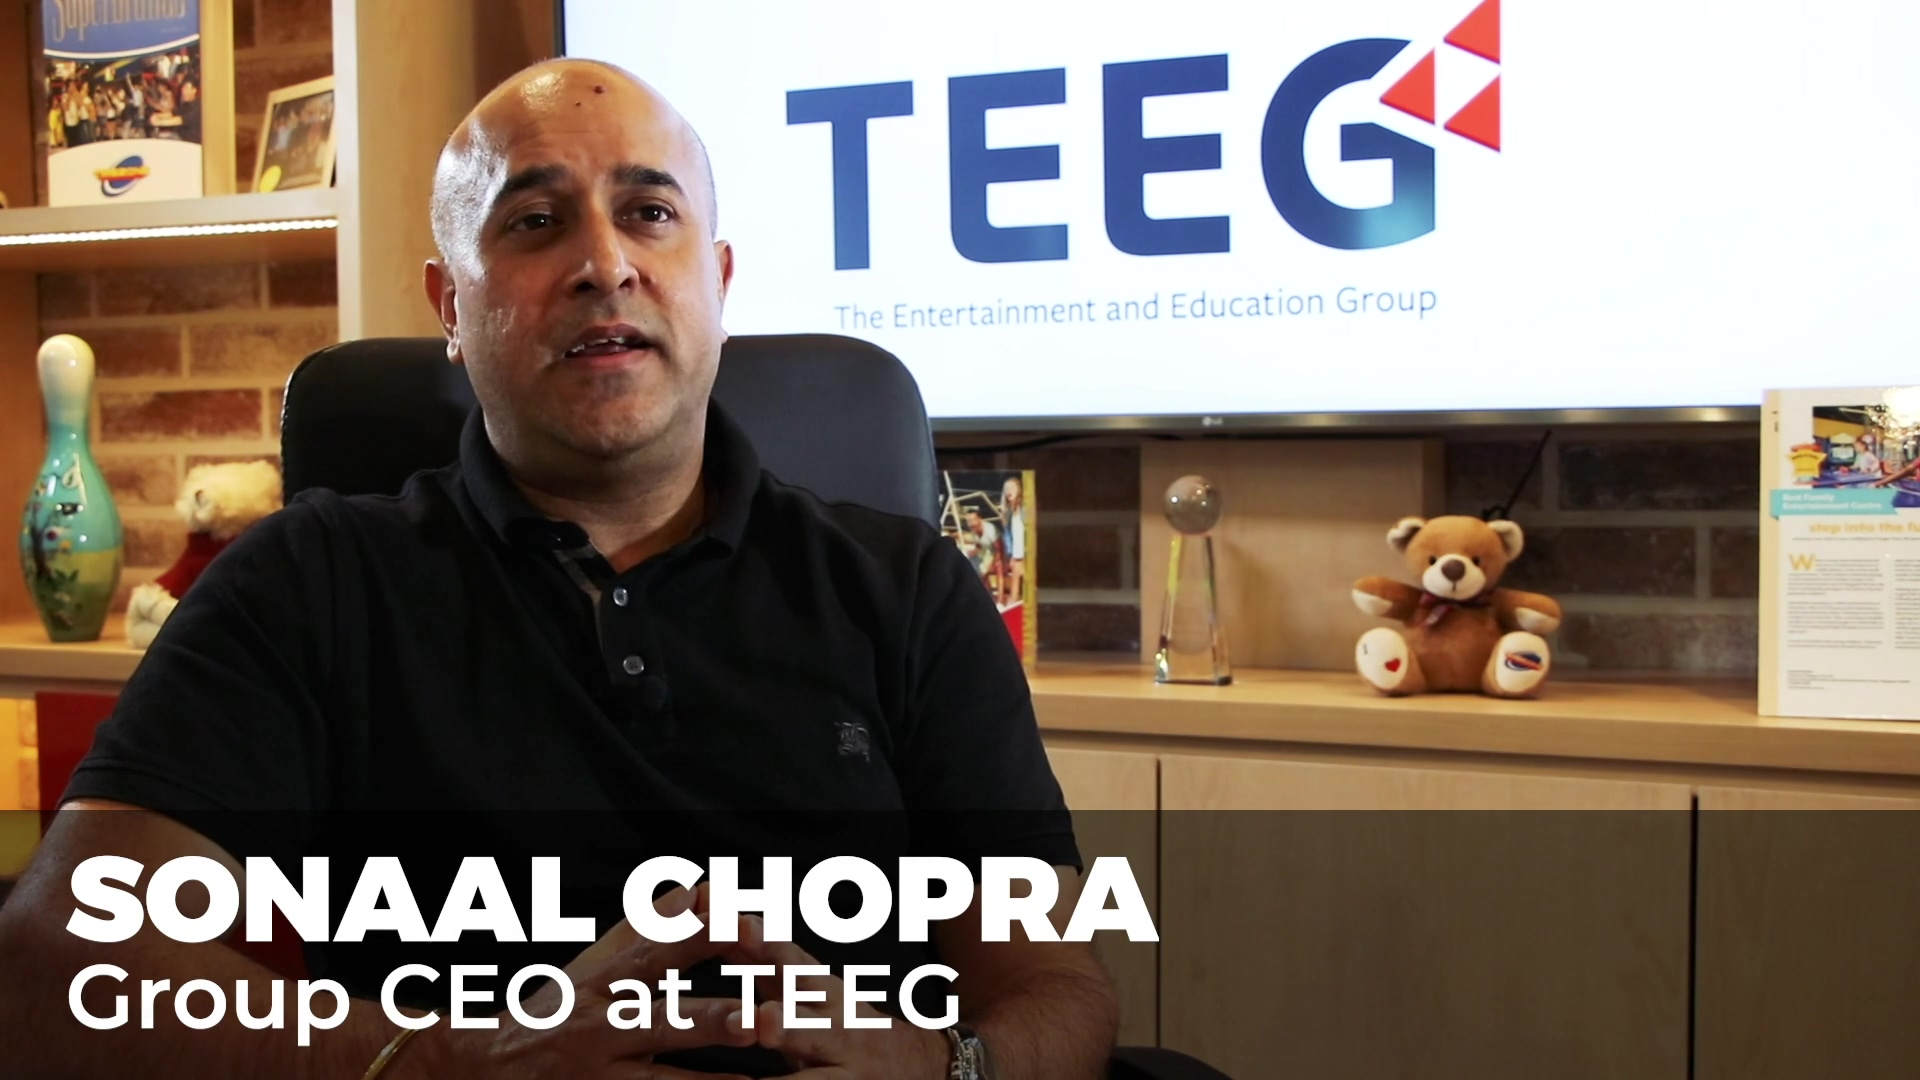 TEEG CEO Sonaal Chopra LONG VERSION with B-ROLL